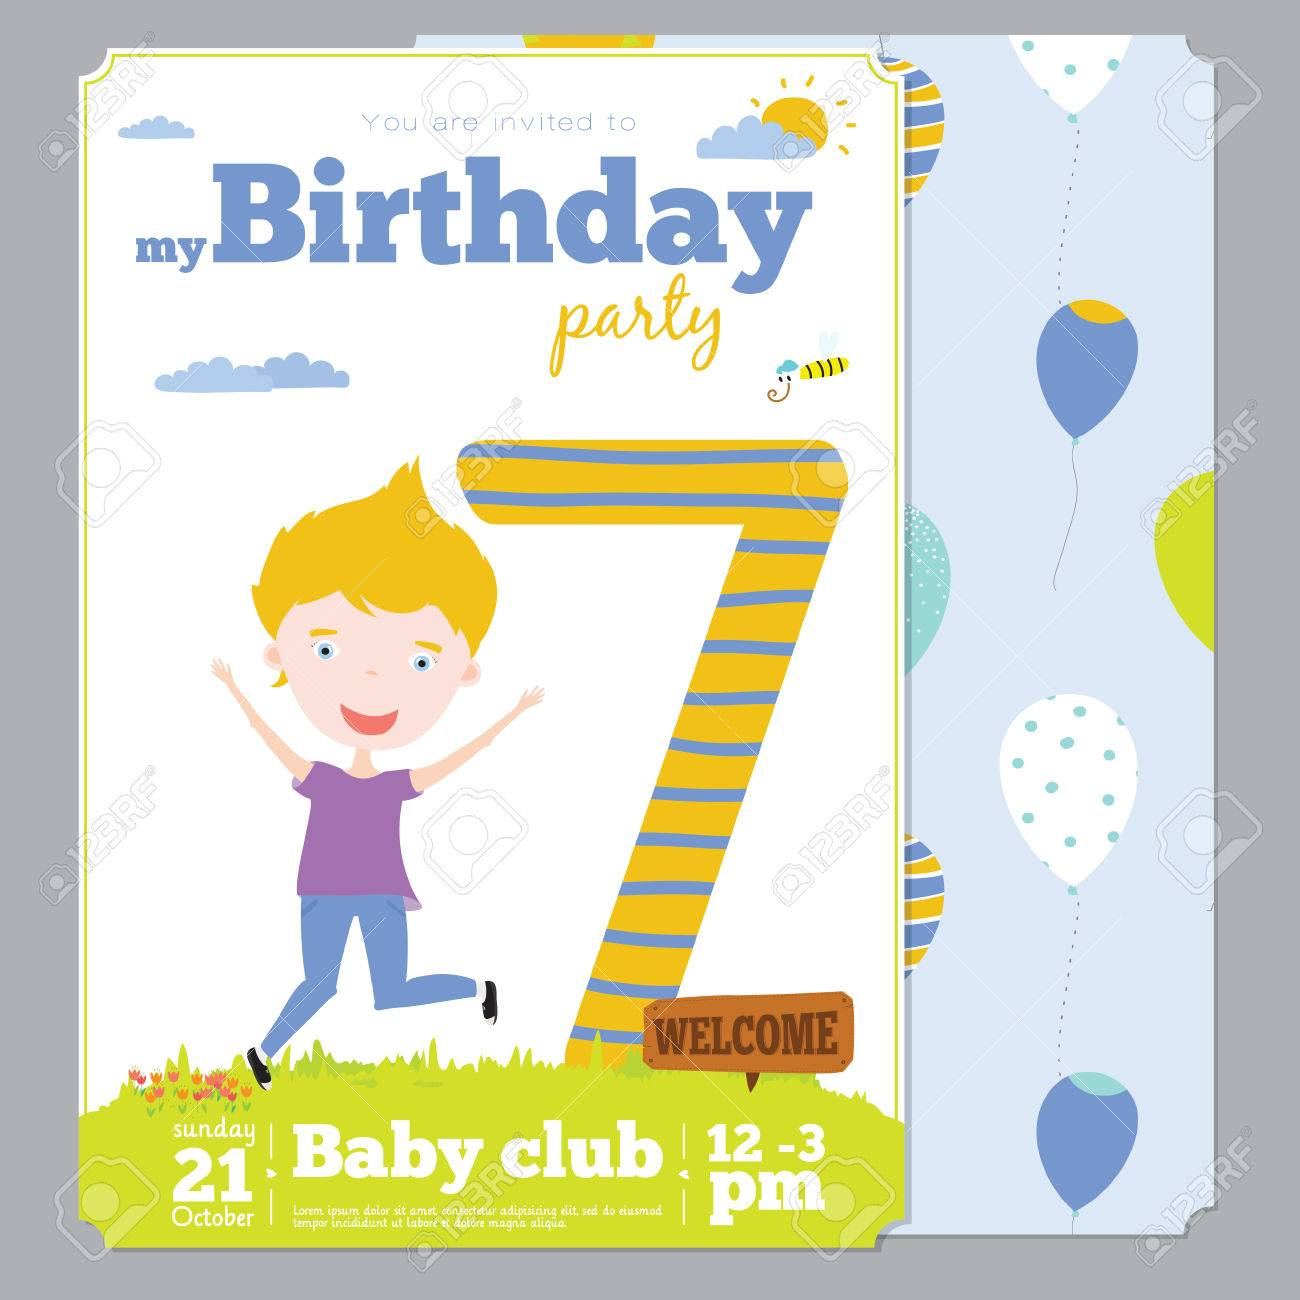 Birthday Anniversary Numbers With Cute Animals And Kids And Birthday Party Invitation Card Template In Cartoon And Cute Style Bright Background With